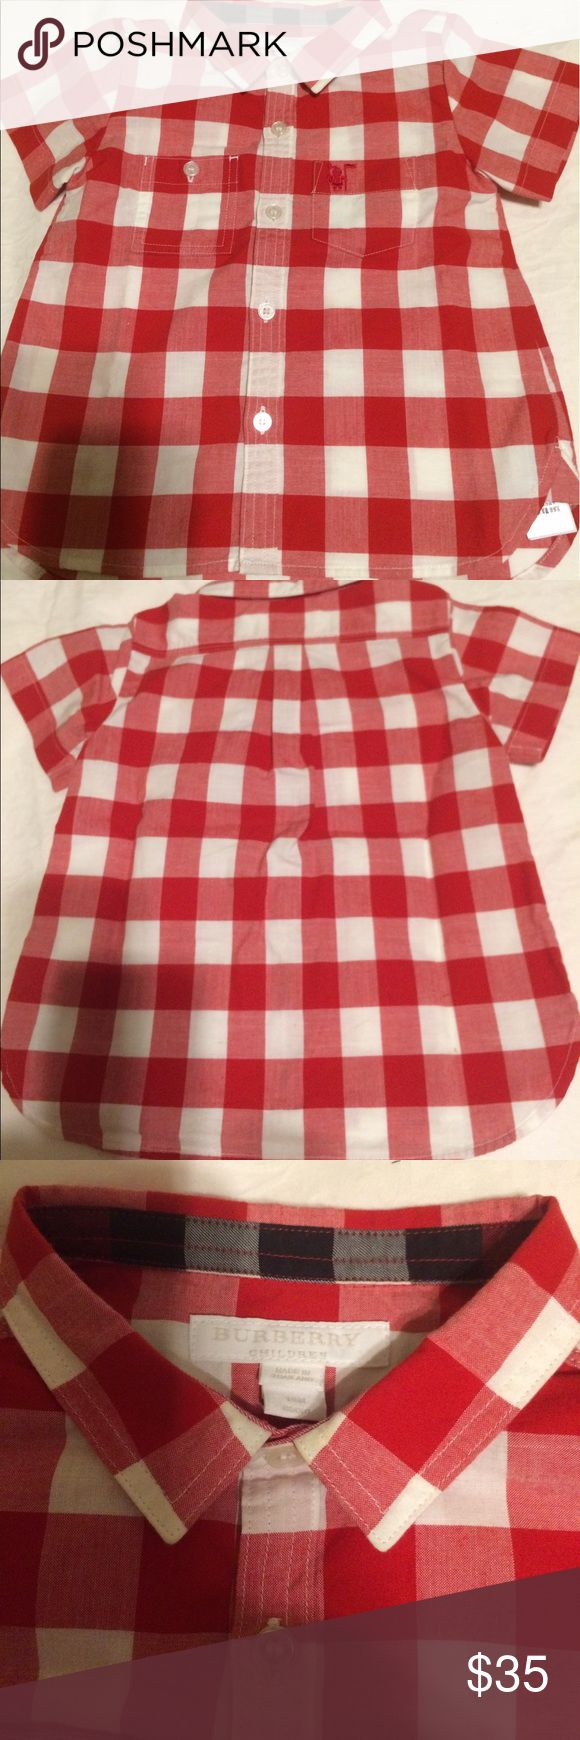 ‼️Lowest Offer‼️Burberry Red Gingham Shirt Burberry Infant short sleeve gingham cotton shirt created in a cooling and lightweight blend of cotton. The design is woven in a gingham check with an oversize scale. It has the embroidered equestrian knight detail on chest. This shirt is in excellent condition and has no stains. Burberry Shirts & Tops Button Down Shirts